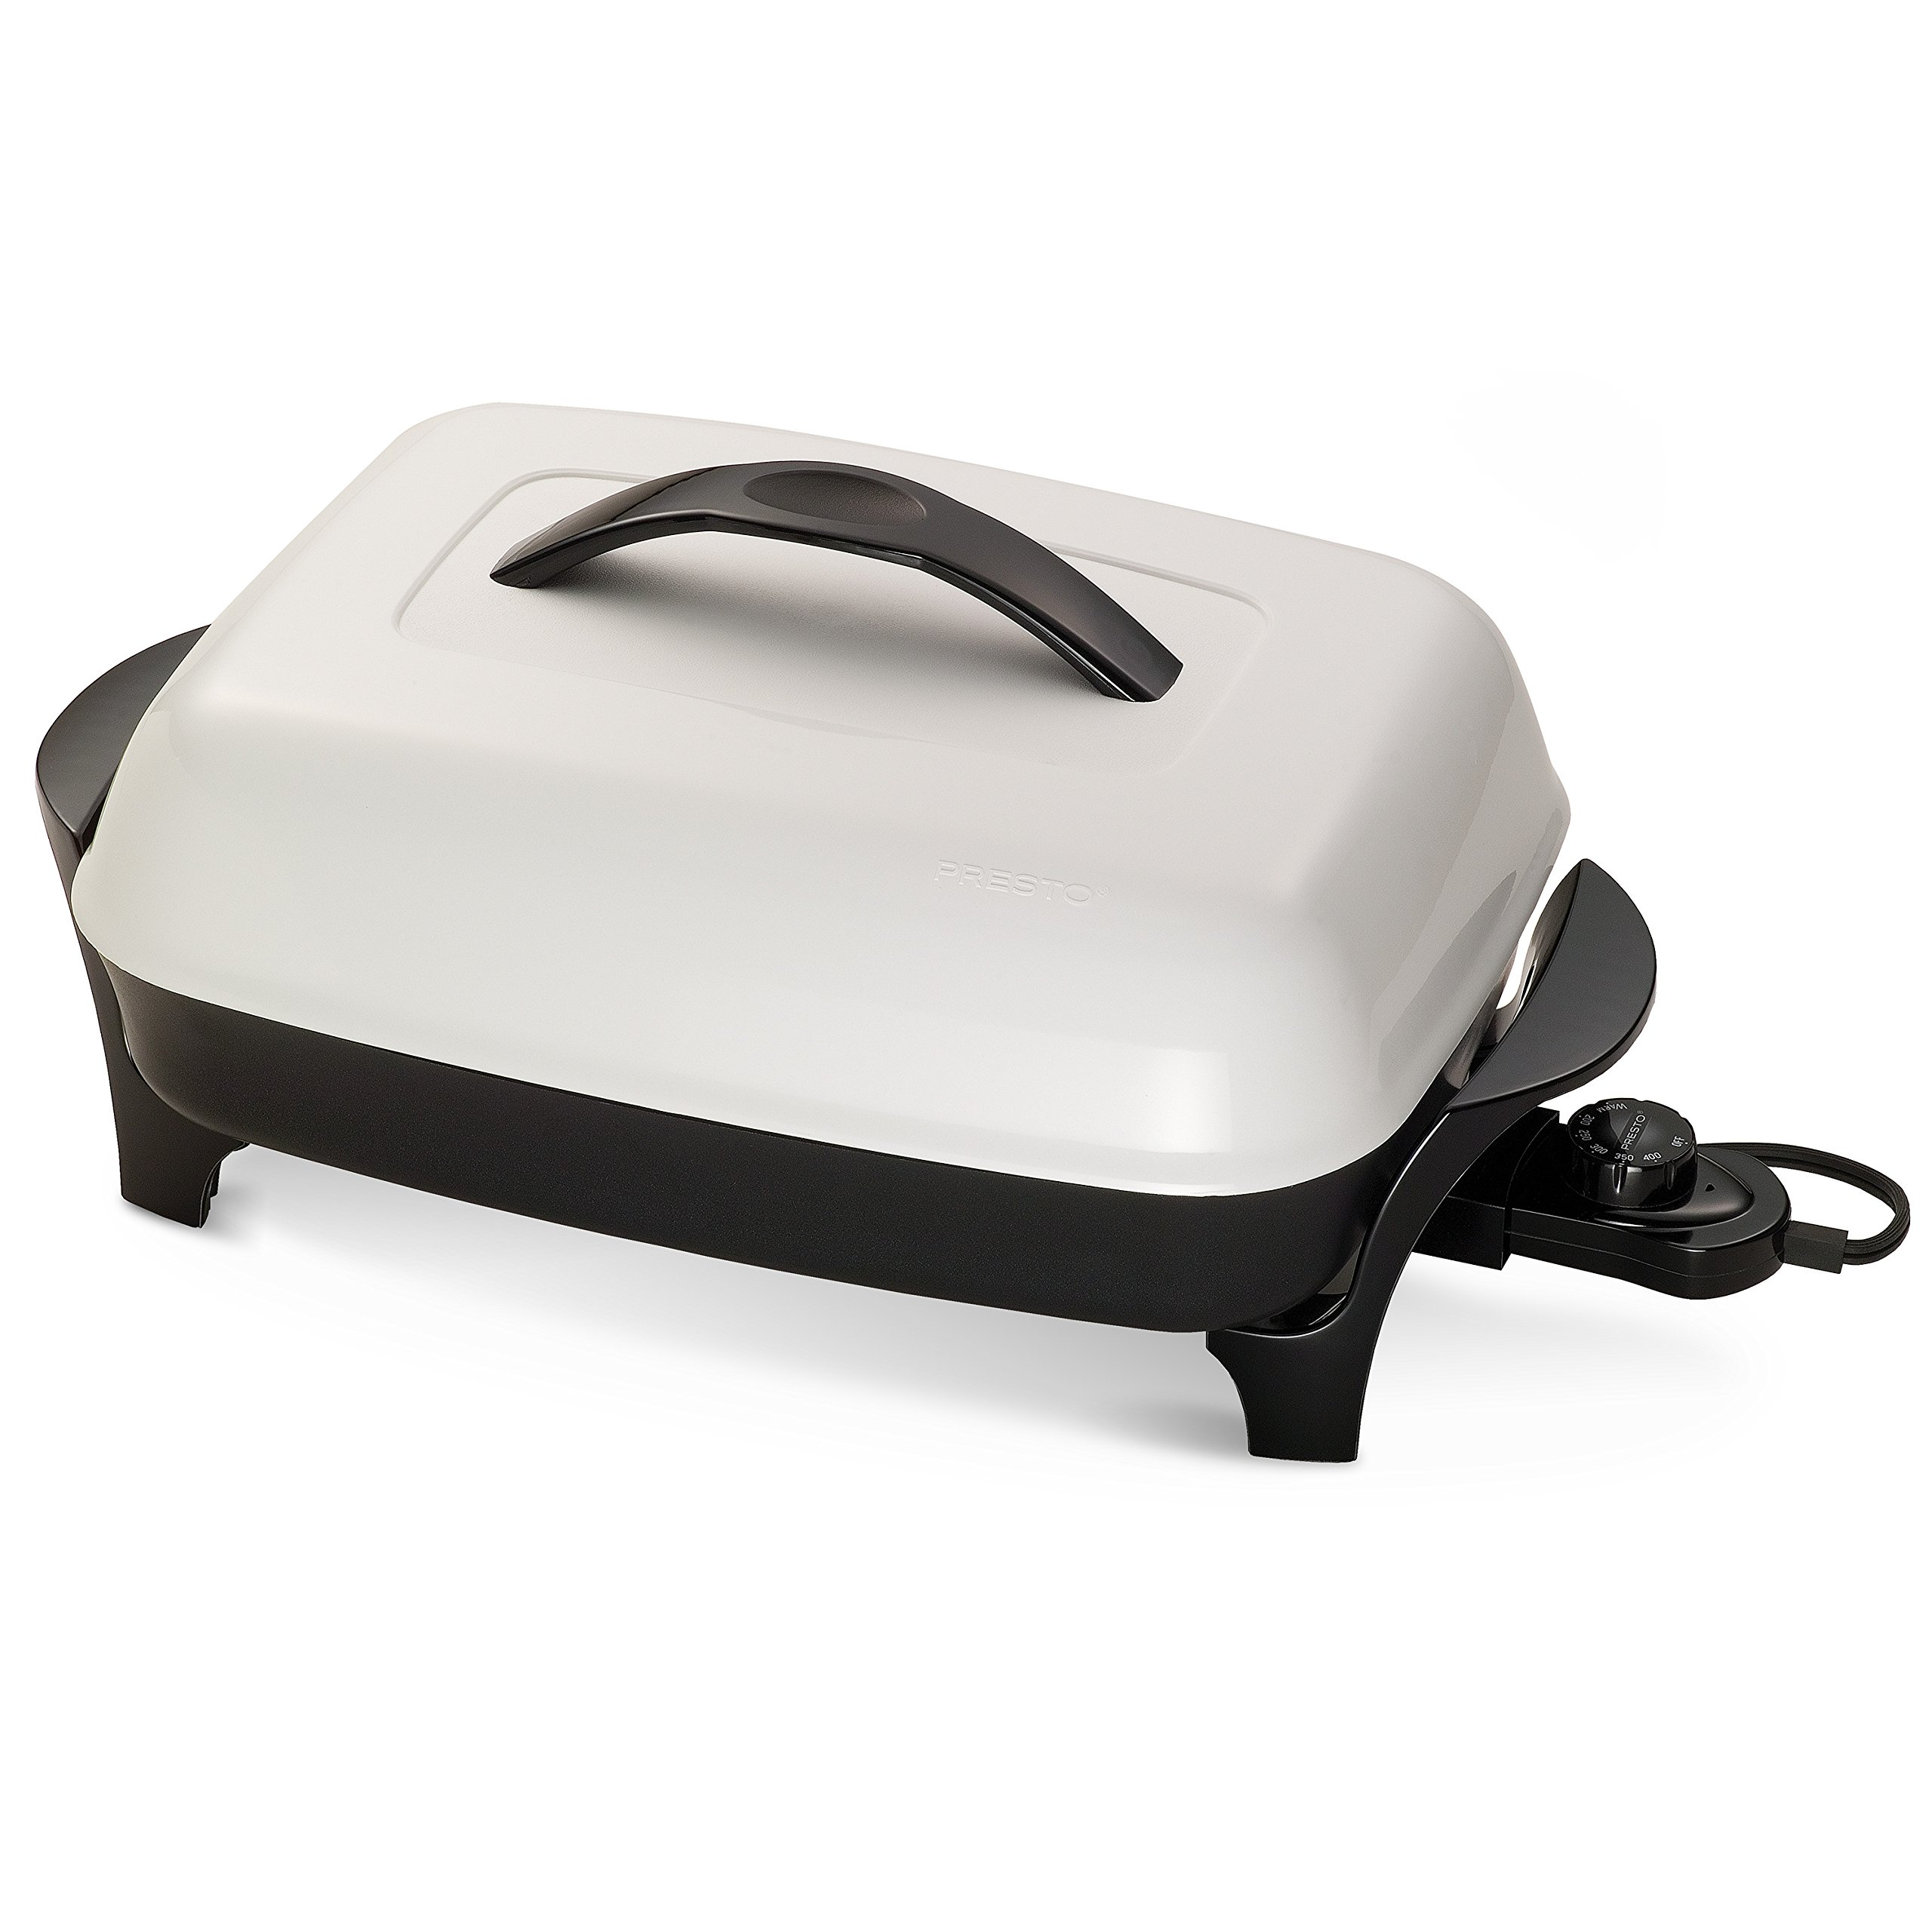 Presto 06850 16-inch Electric Skillet by Presto